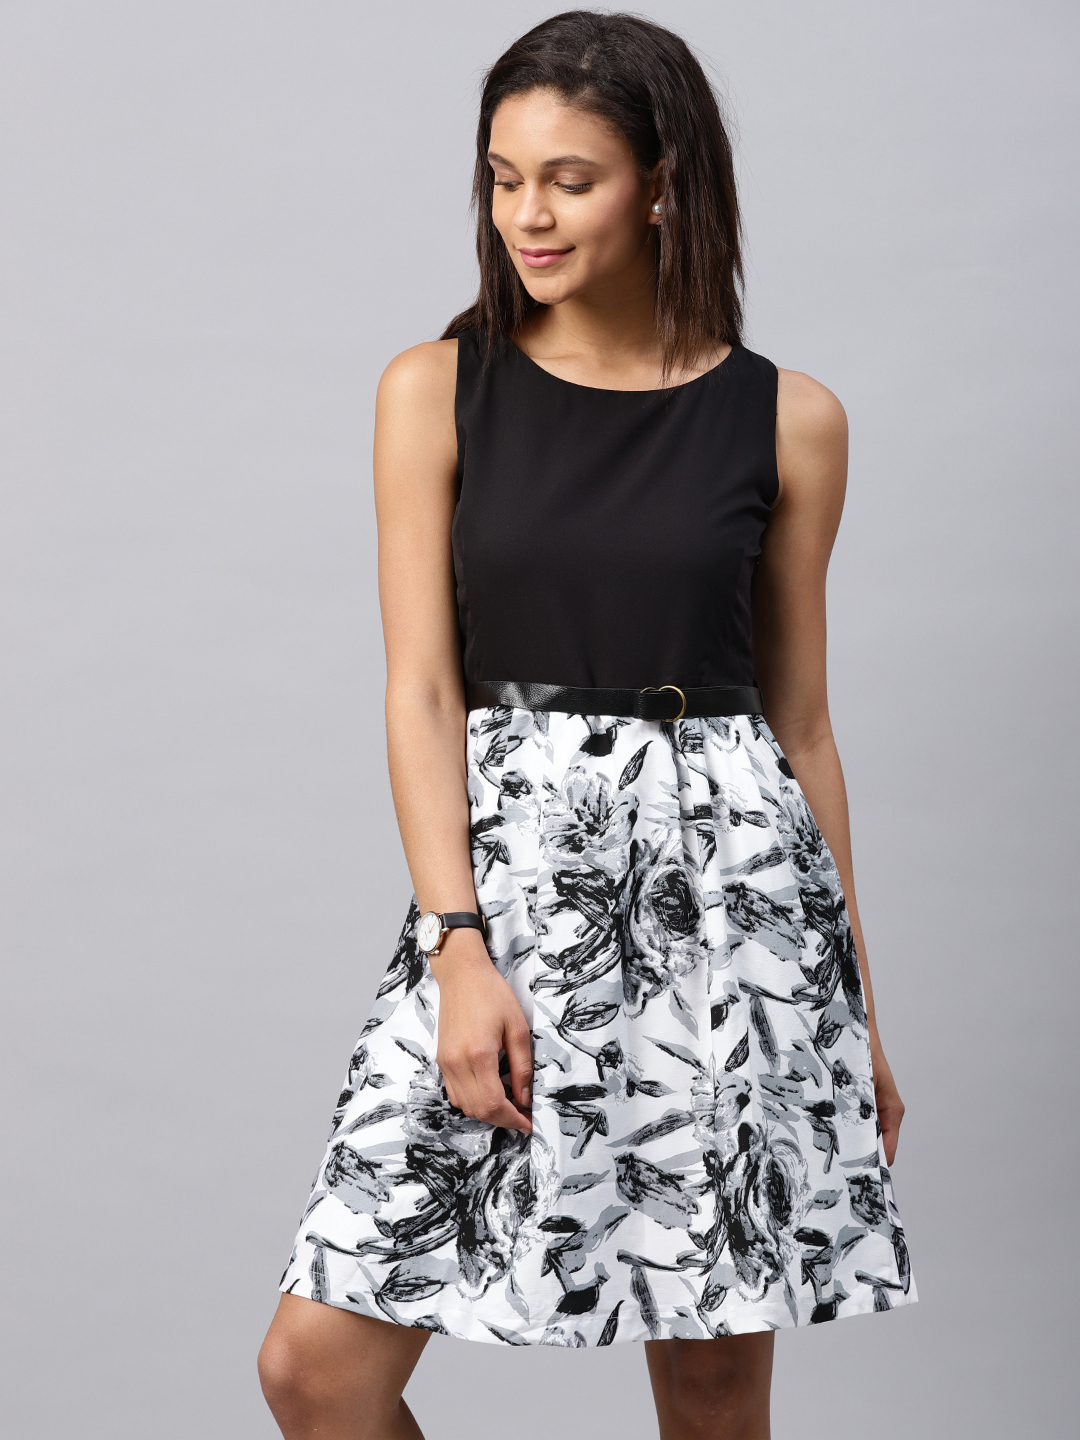 Black And White Dress Online India Ficts